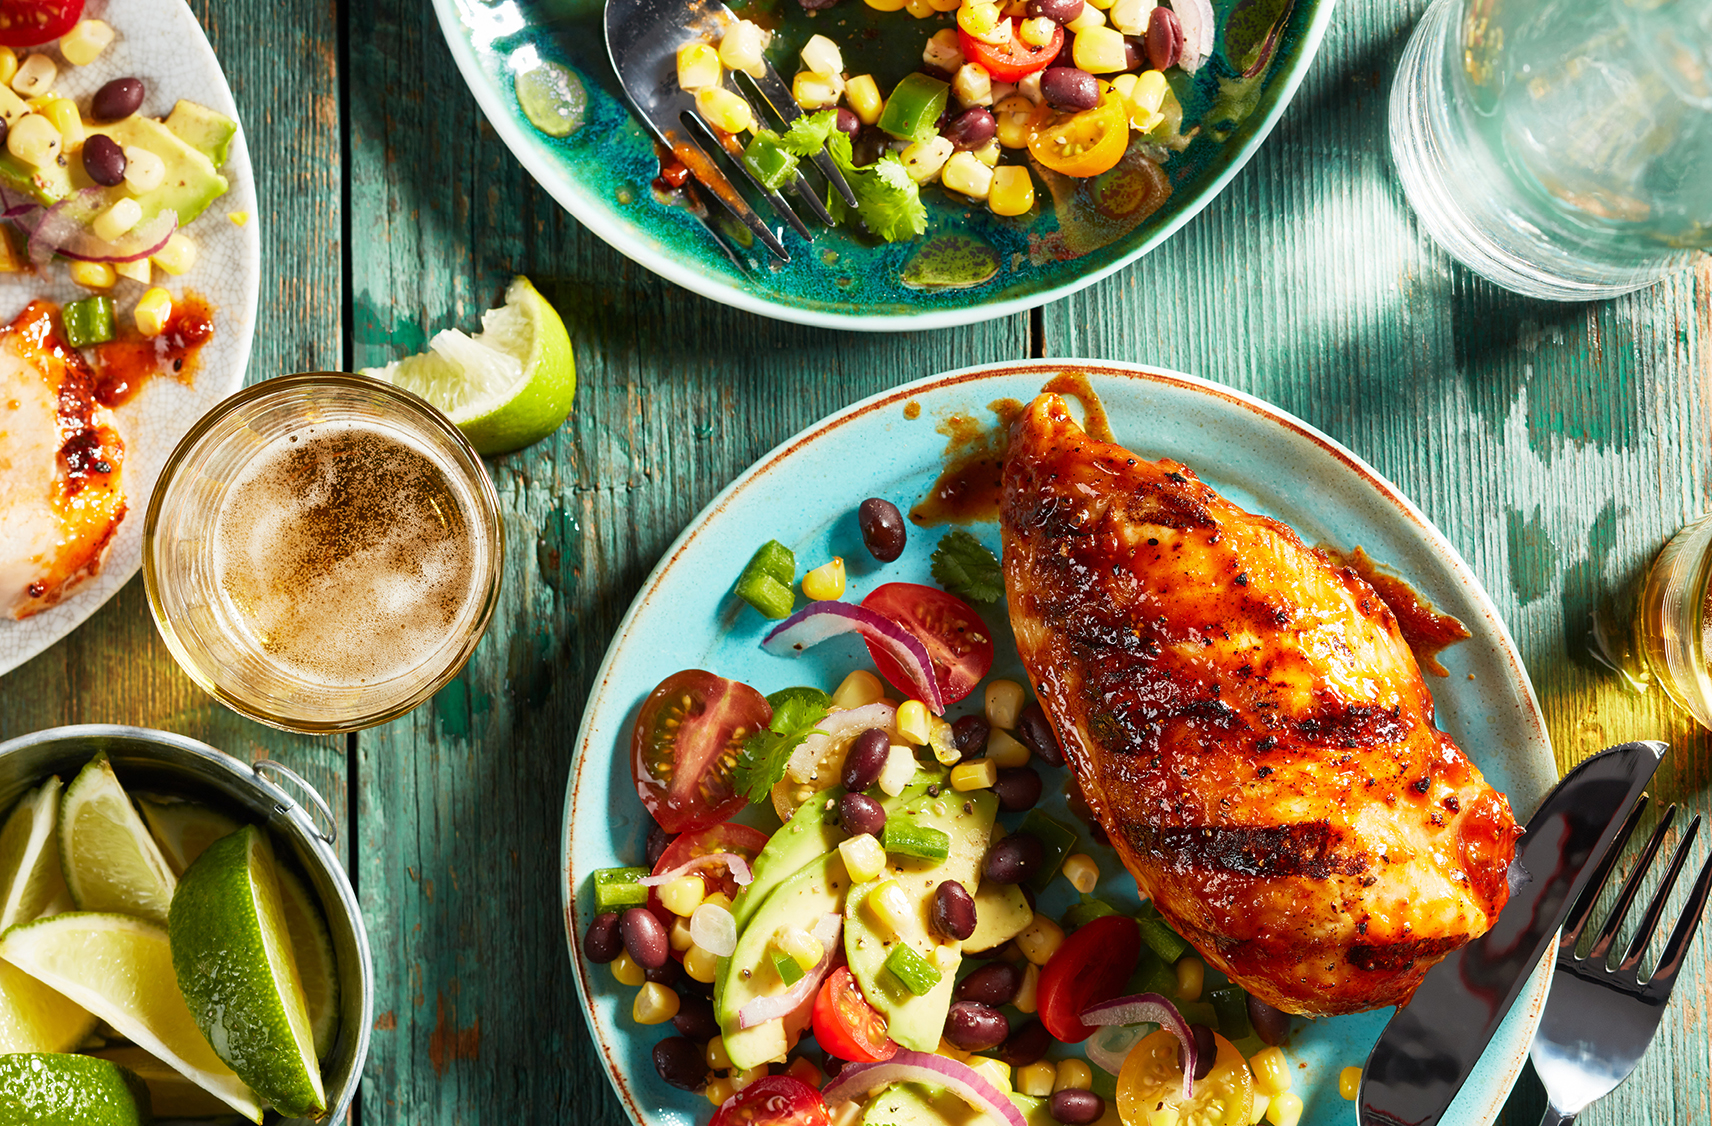 grilled pablano lime chicken served with corn a black bean salad all on a light blue plate.  lime wedges and a glass of drink on the side